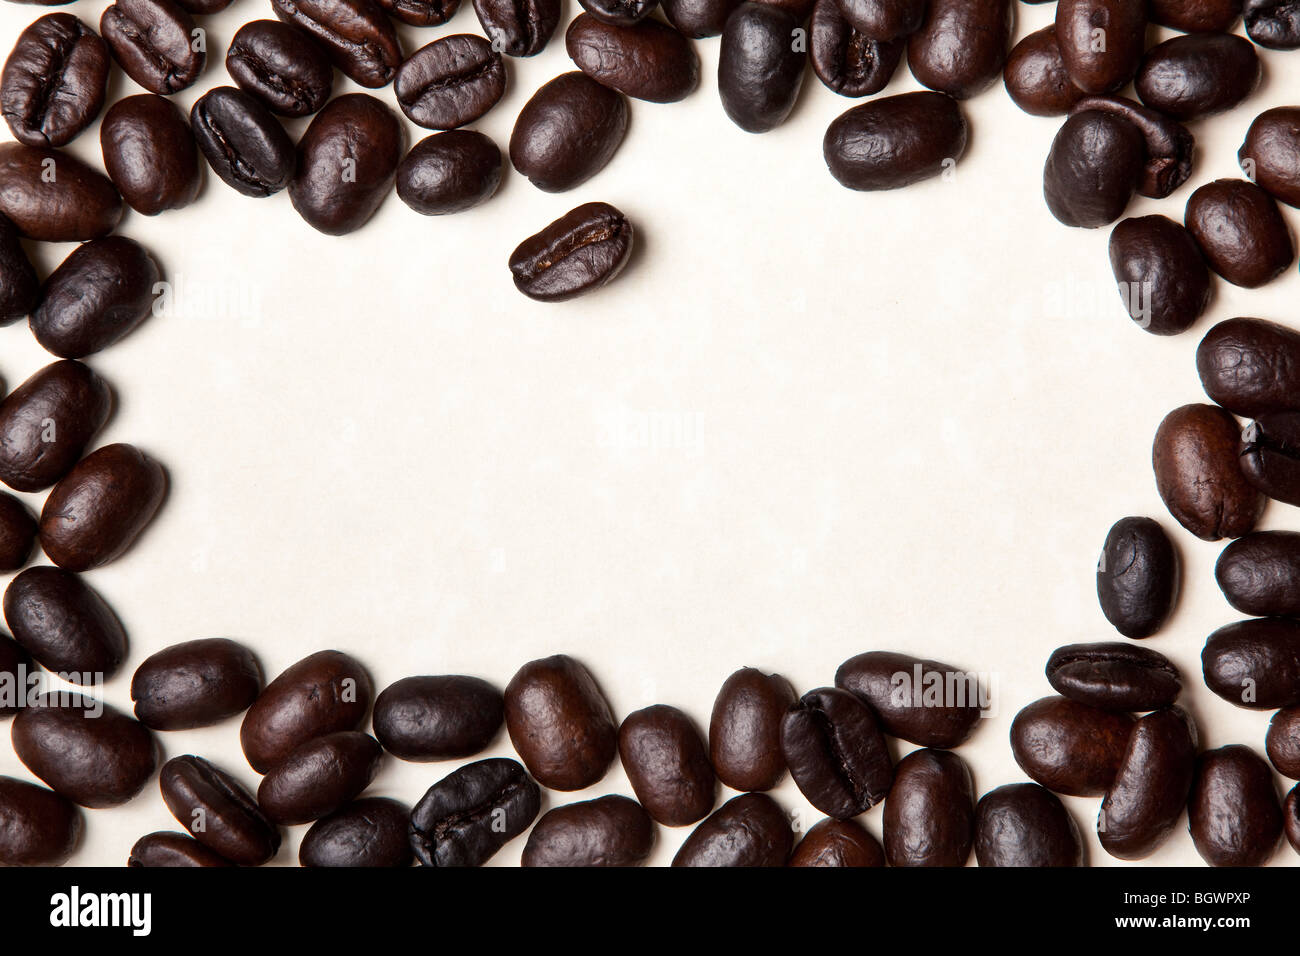 coffee beans isolated on a white background - Stock Image